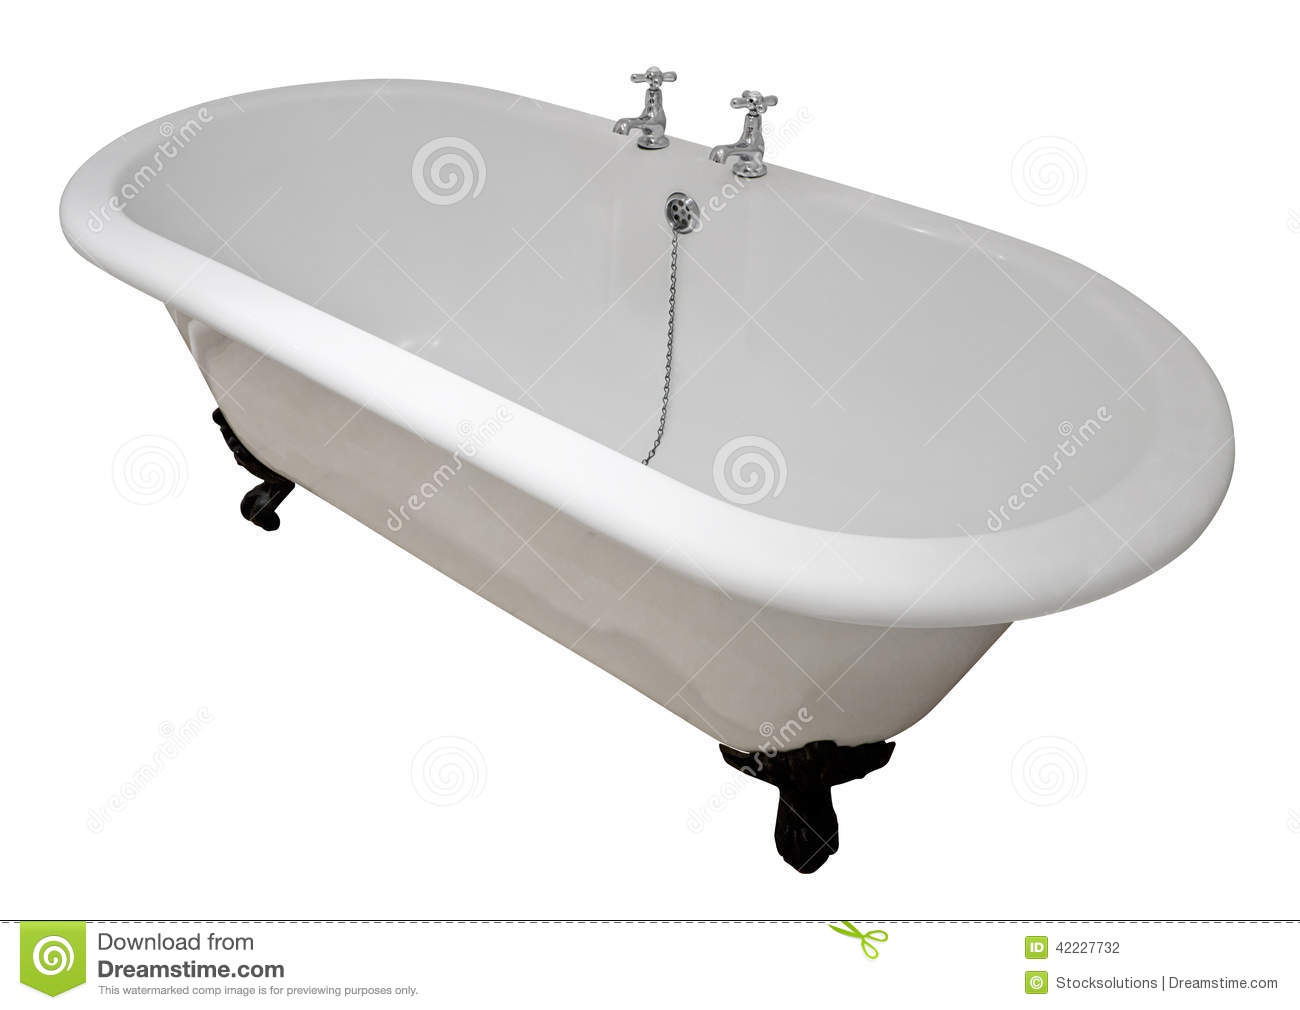 Luxury white flat rim roll top clawfoot bathtub isolated against a ...